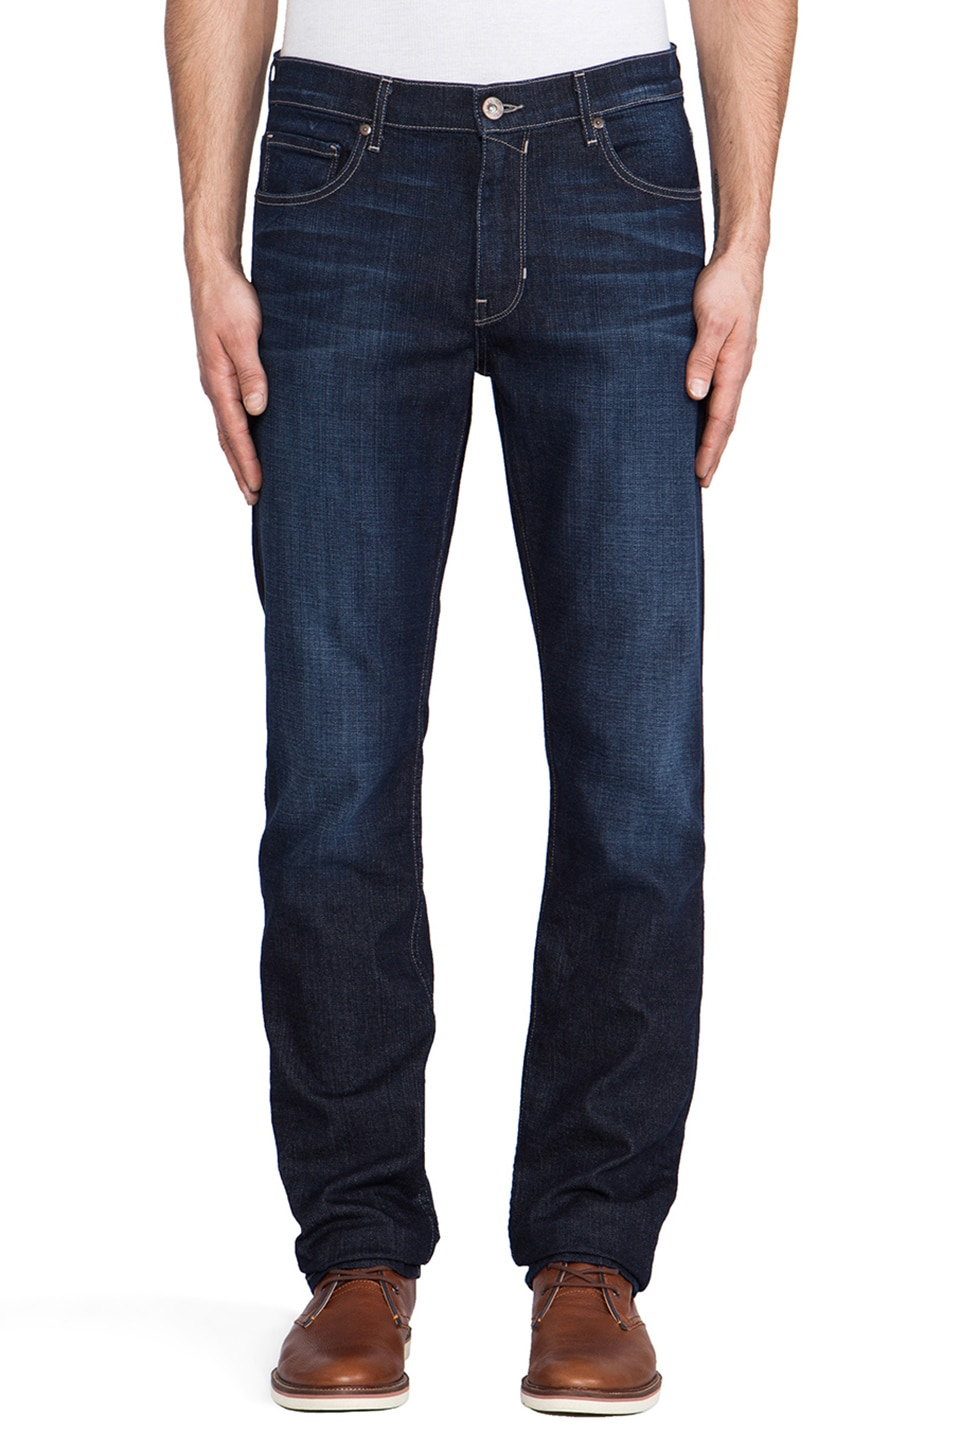 Paige Denim Normandie Slim Straight in Bruiser